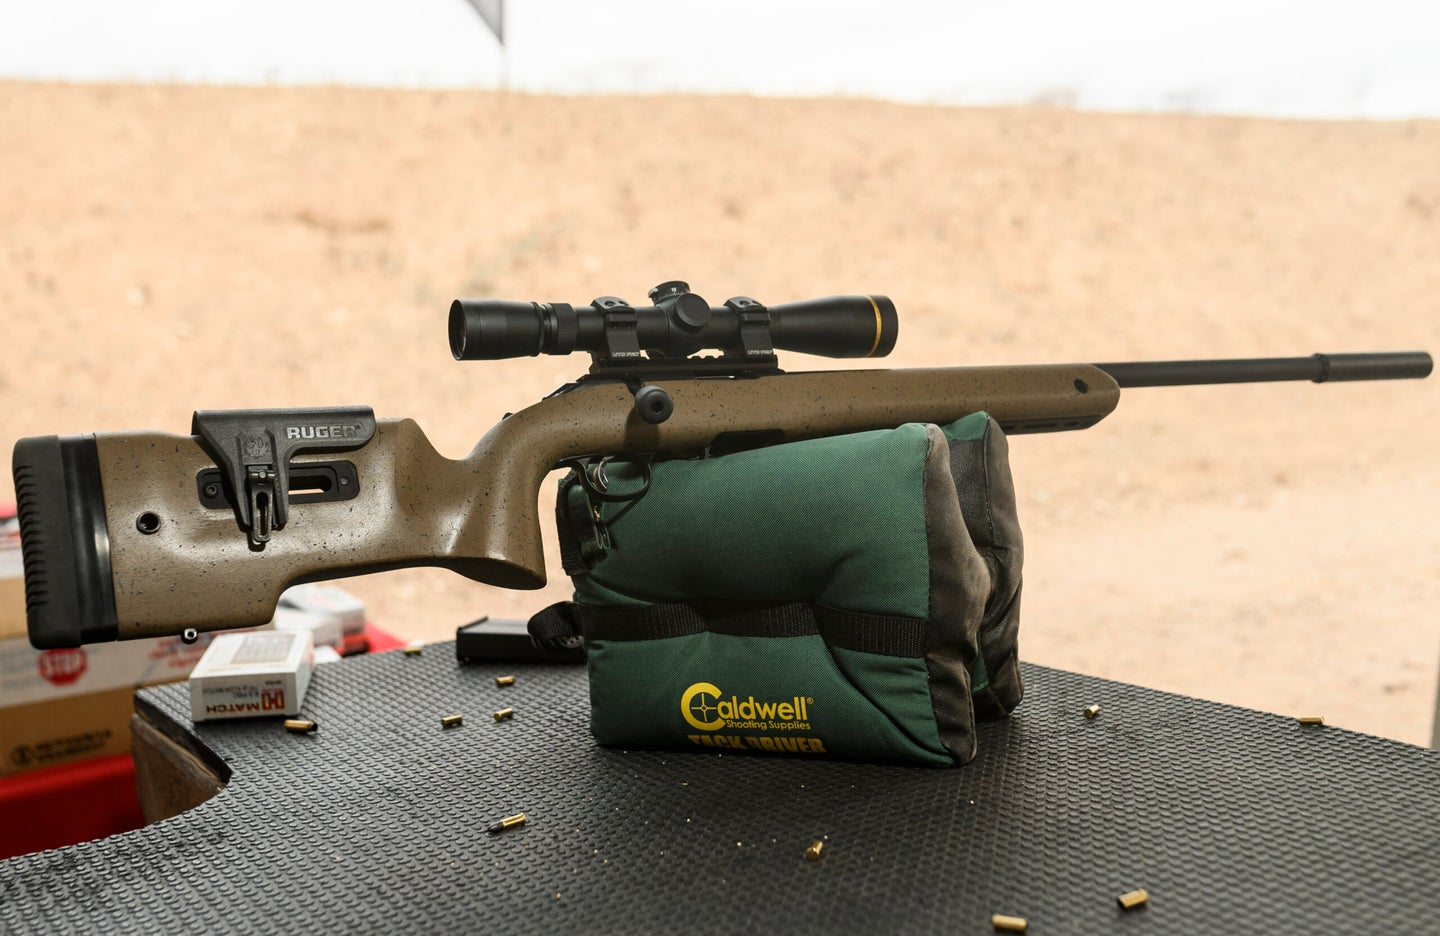 a rimfire rifle resting on a shooting bag at the range with empty 22 shells on the table